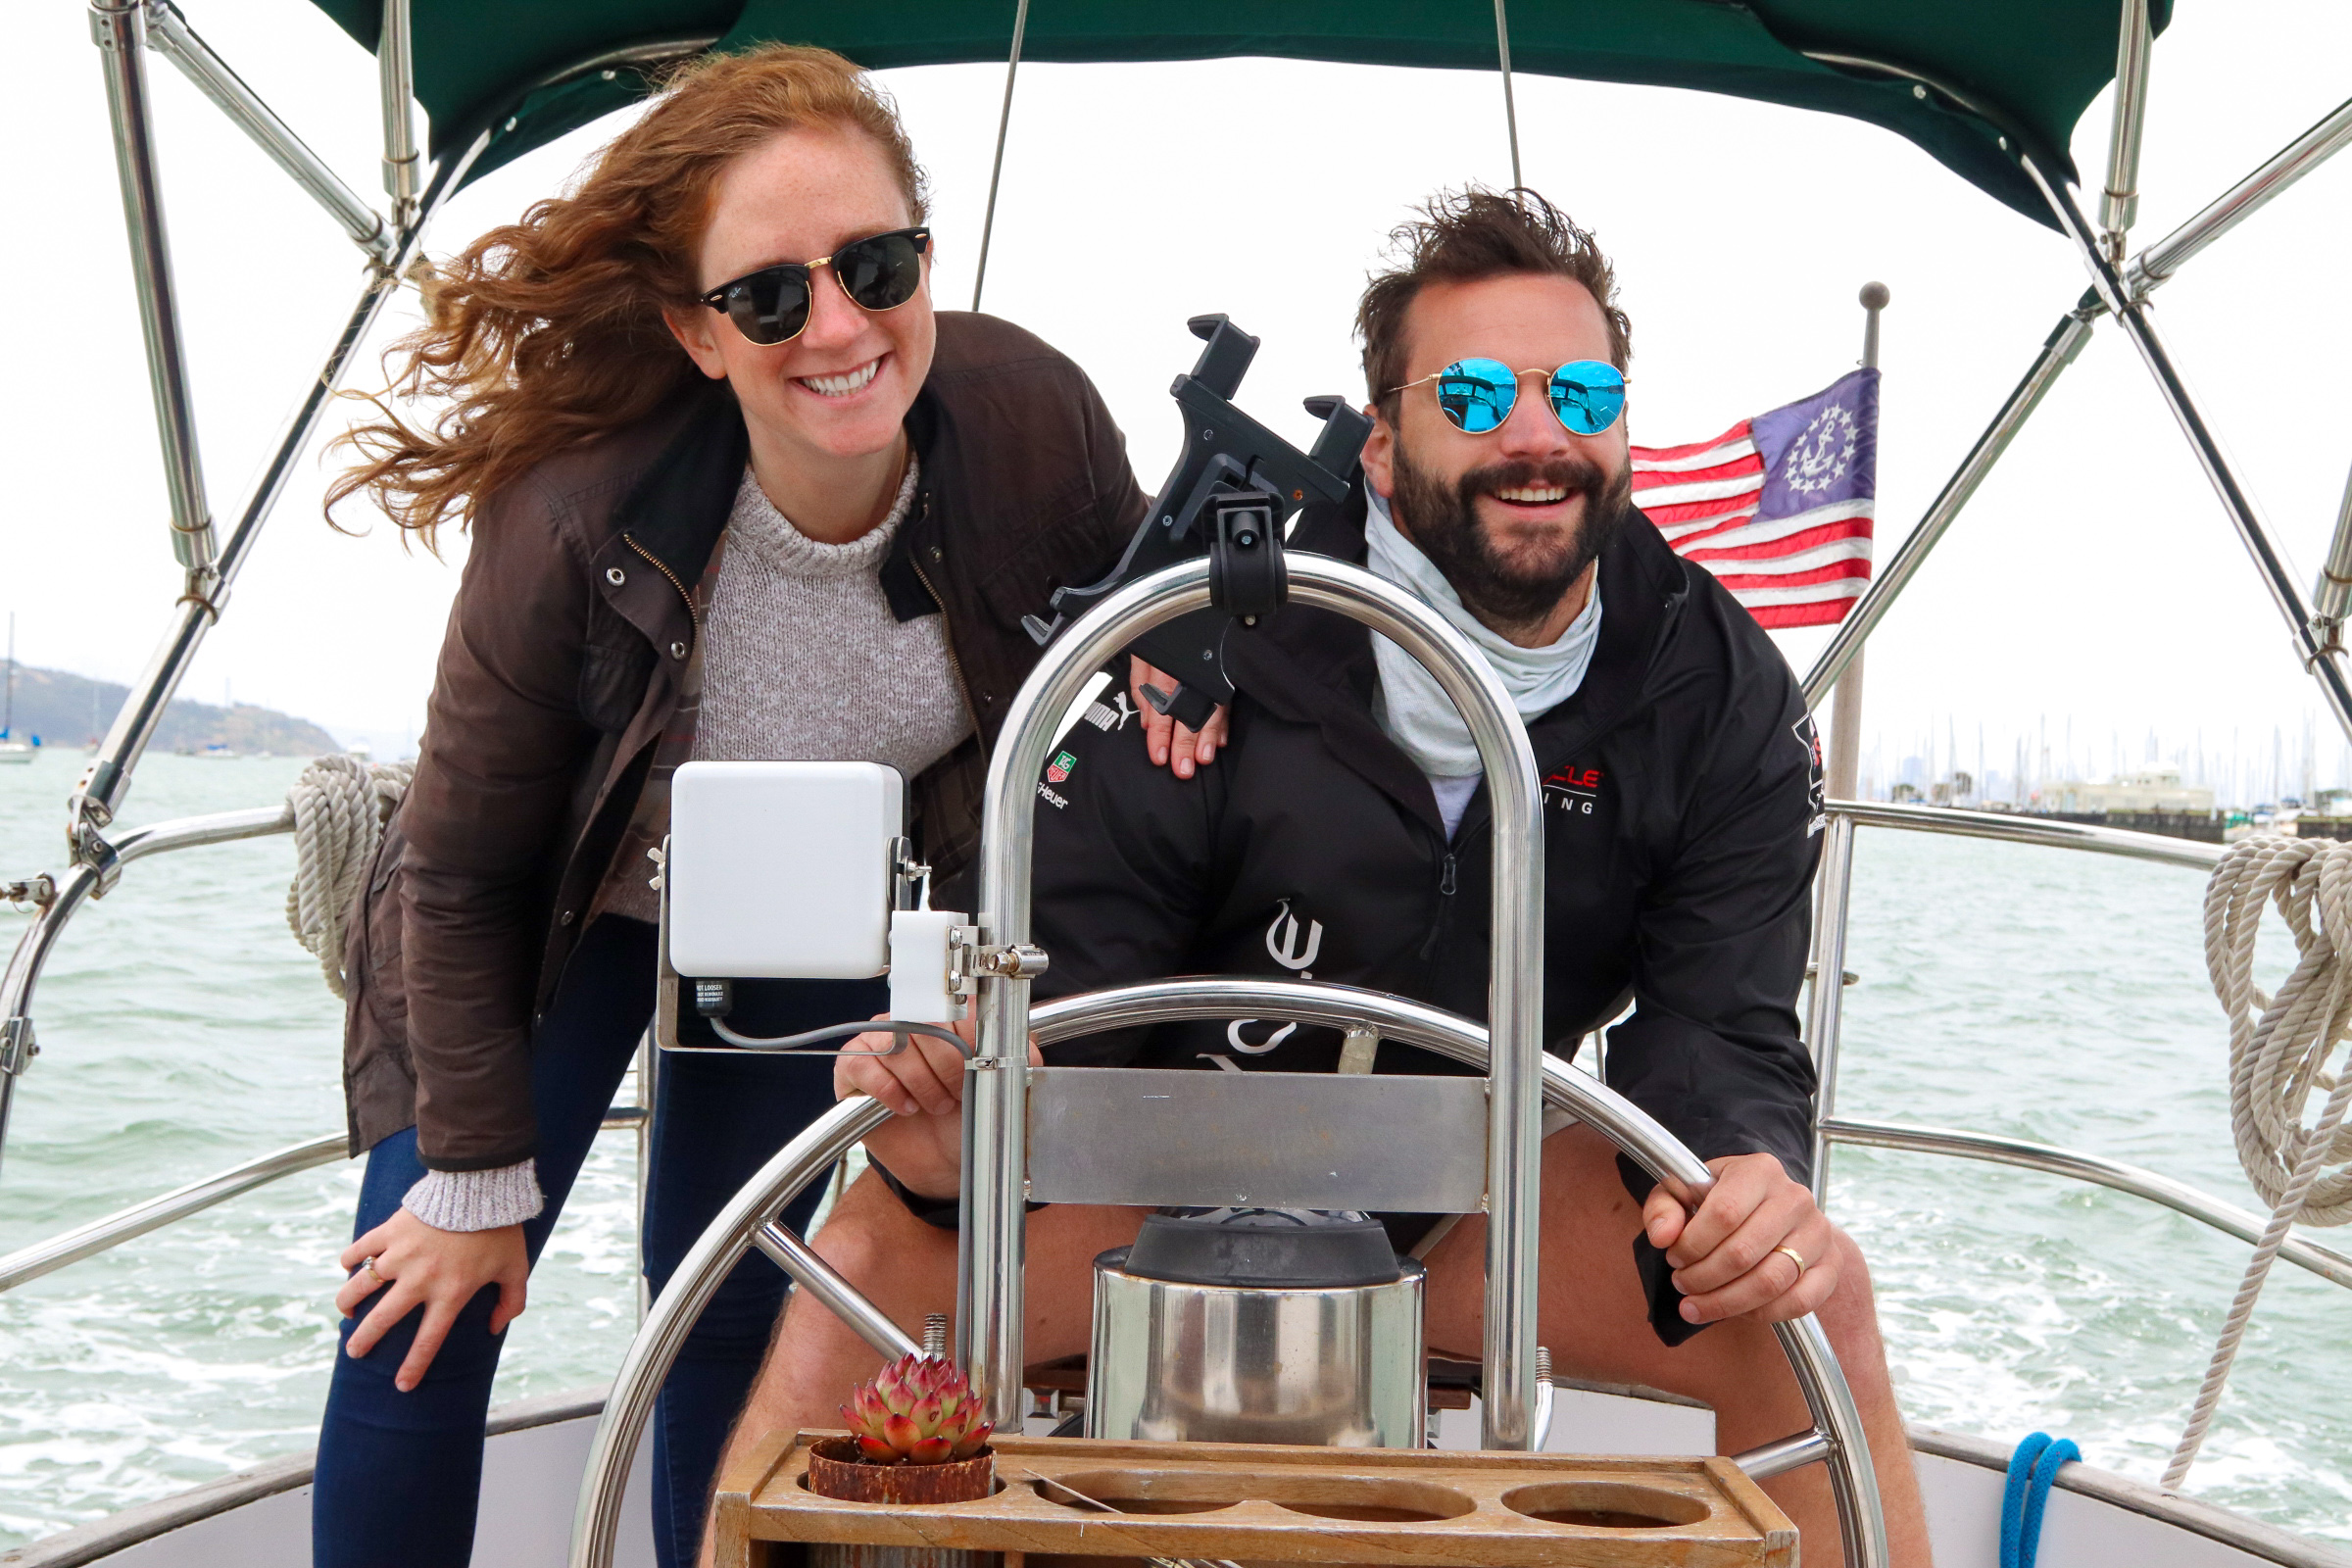 San Francisco couple just quit their jobs to travel and sail full-time